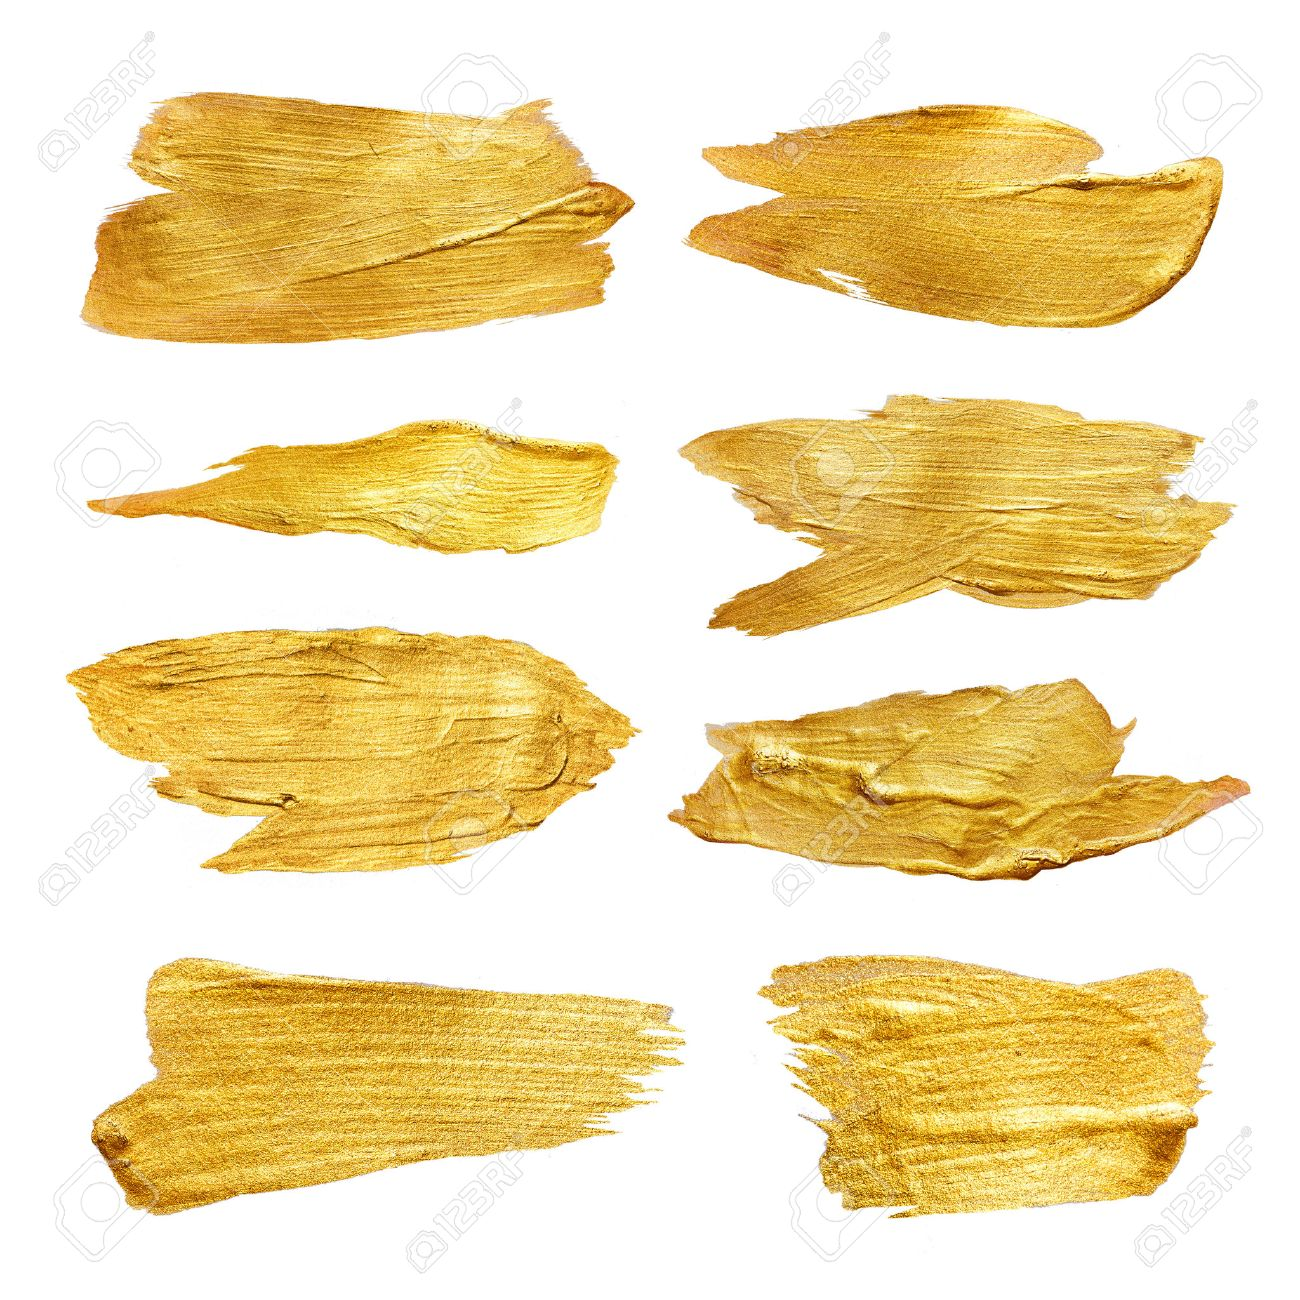 Gold Foil Watercolor Texture Paint Stain Abstract Illustration Set. Yellow shining brush stroke for you amazing design project. - 54416552